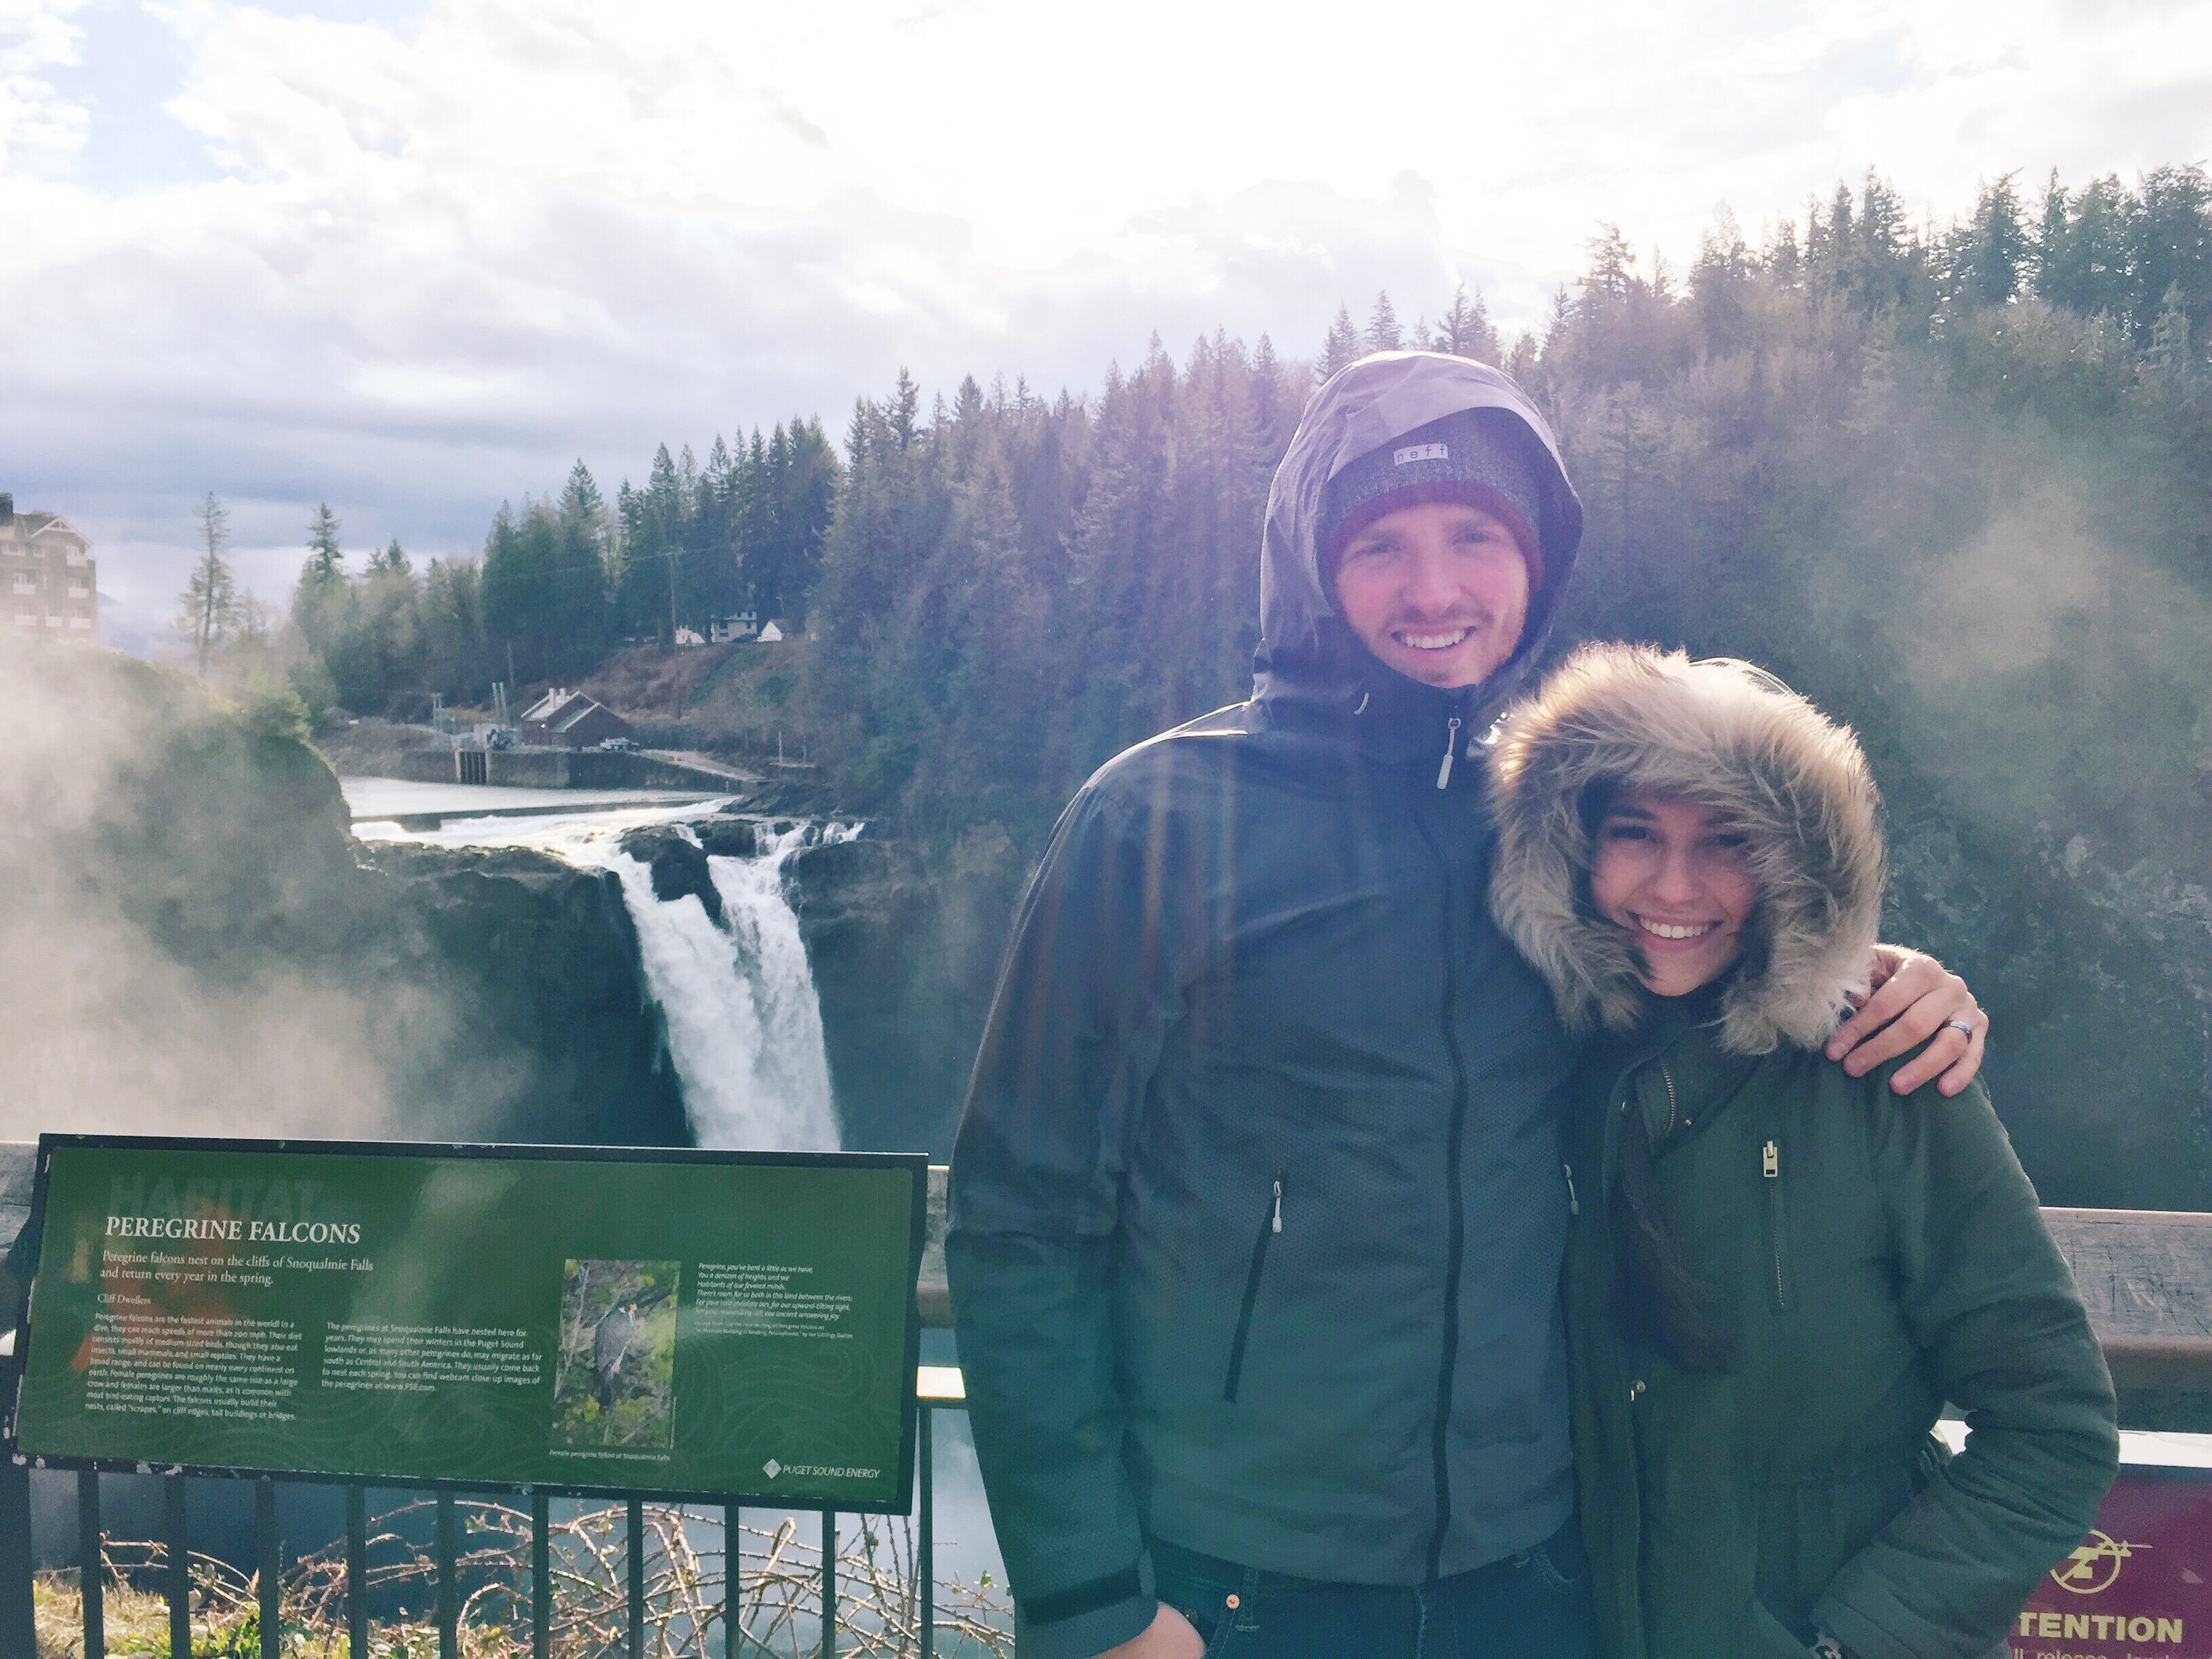 Being Blown Away at Snoqualmie Falls